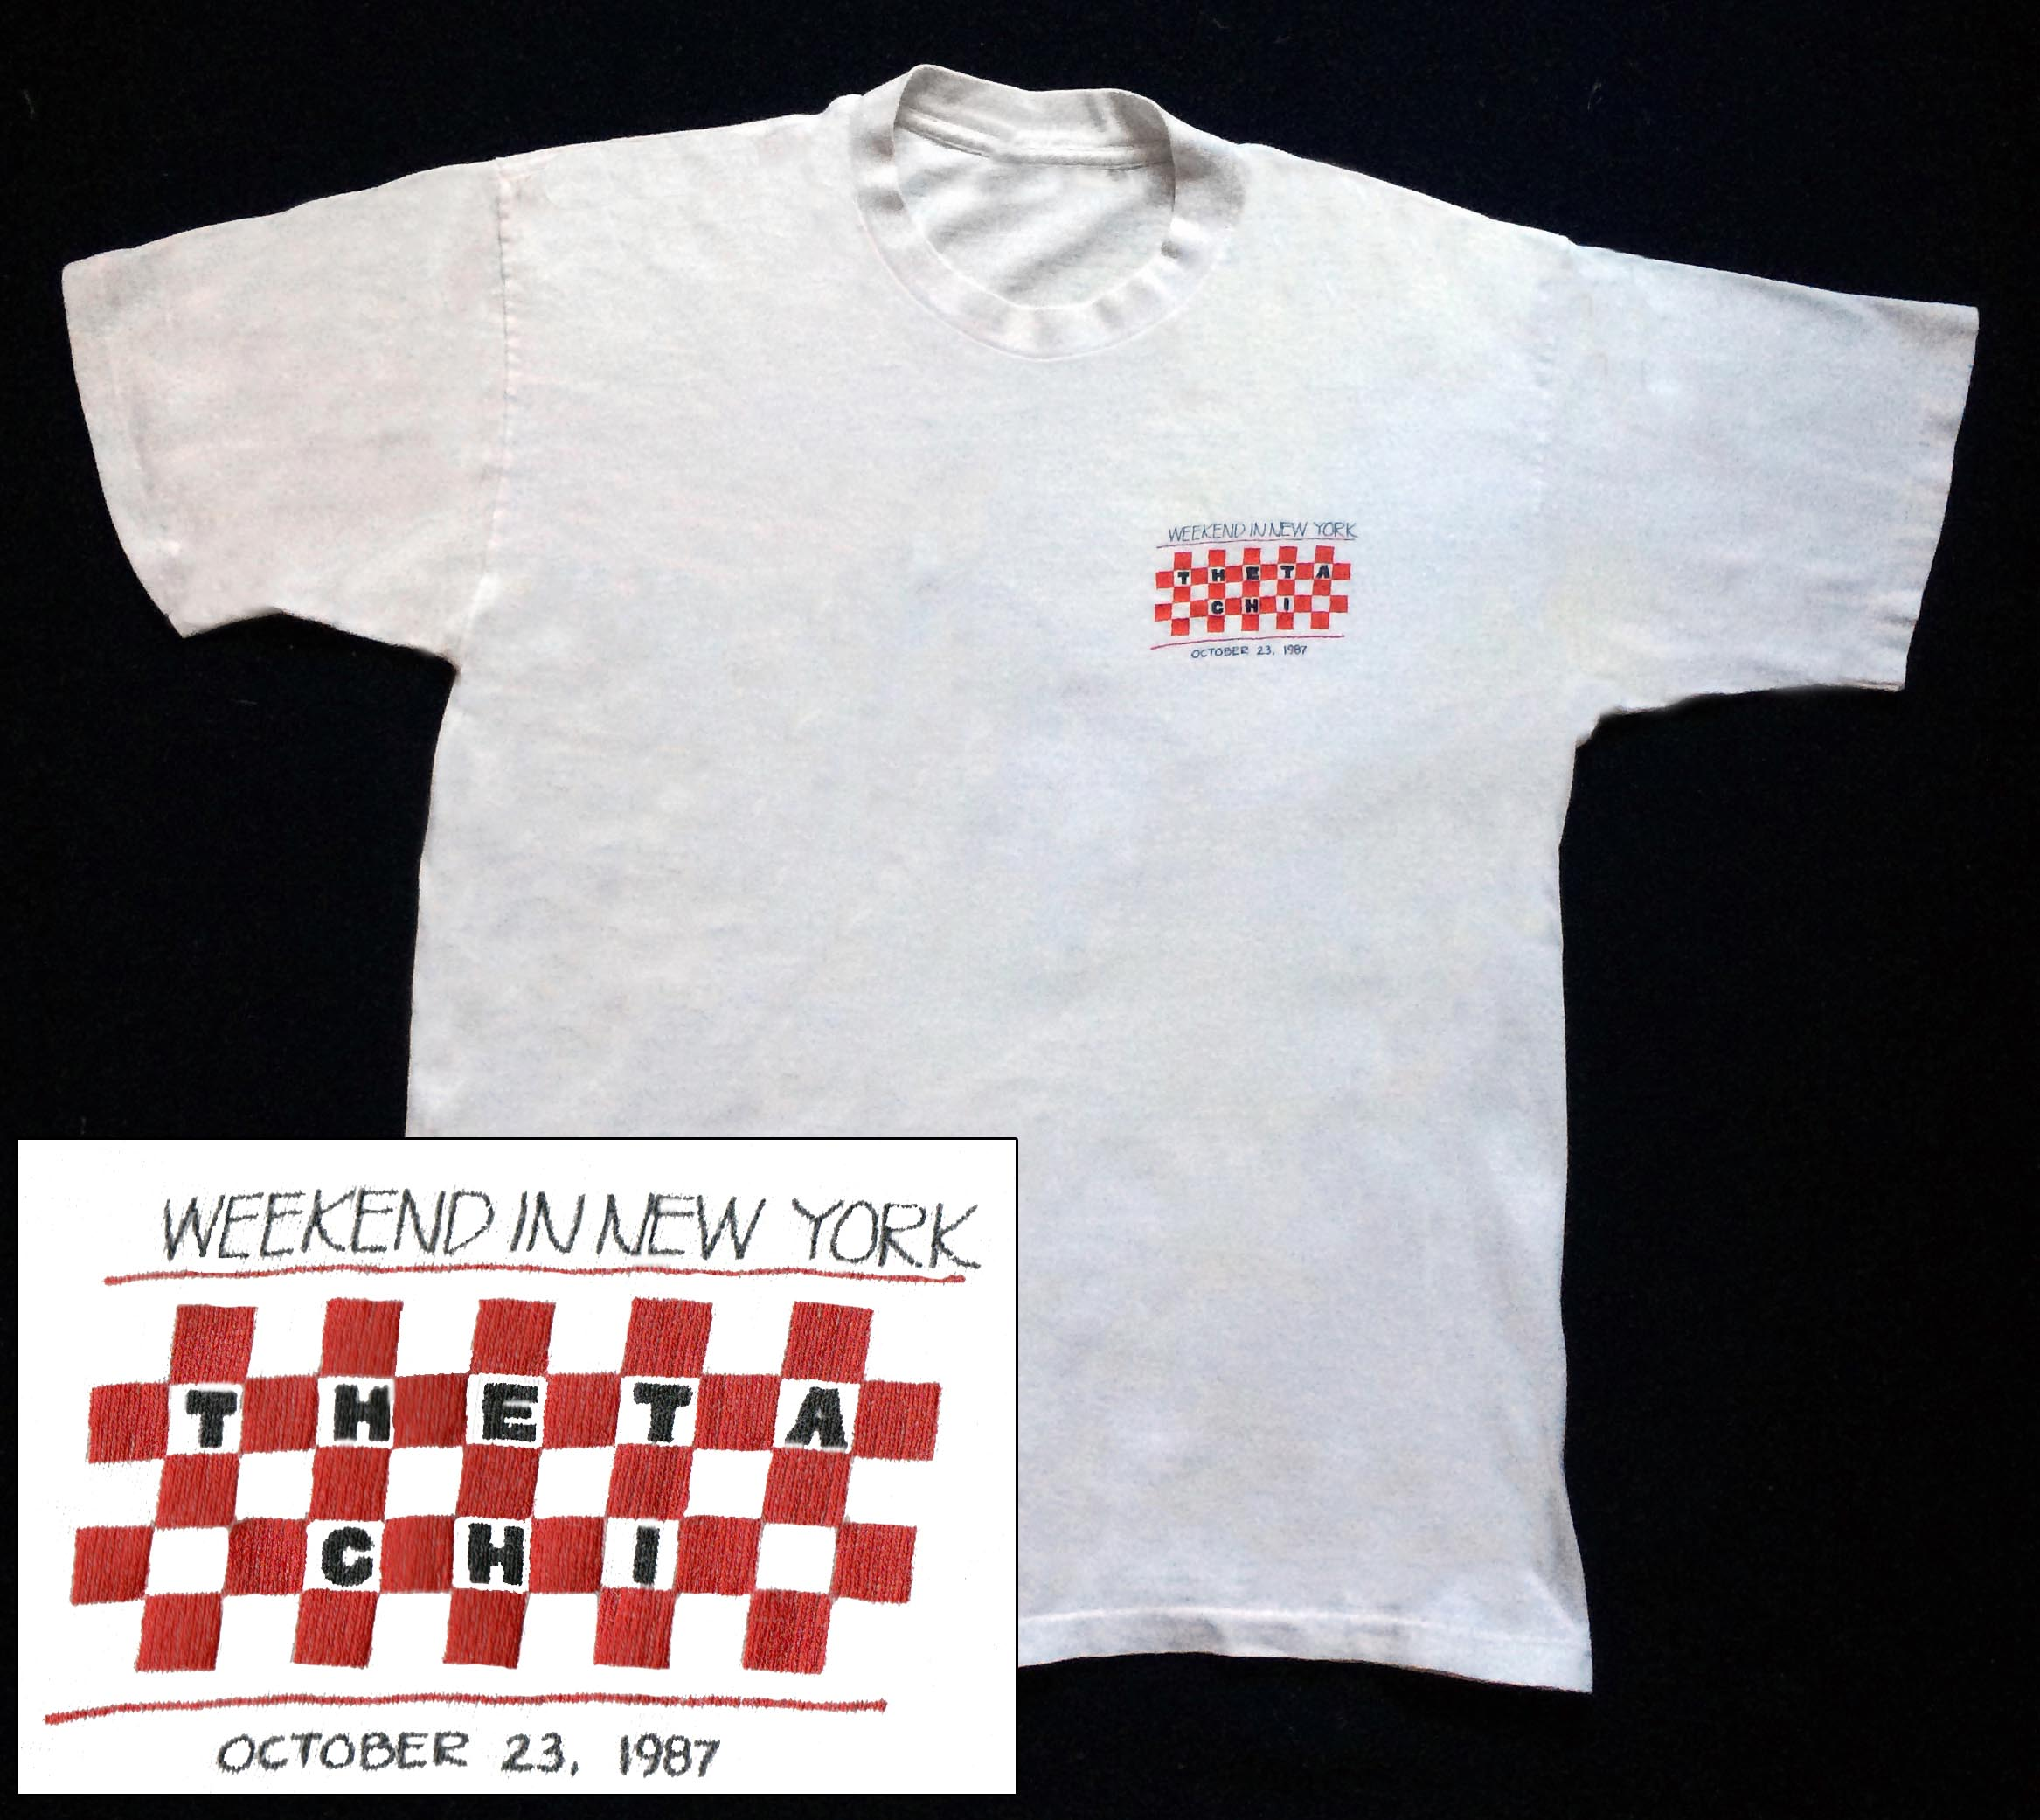 Weekend in New York Party T-Shirt (Front) - Oct. 23, 1987